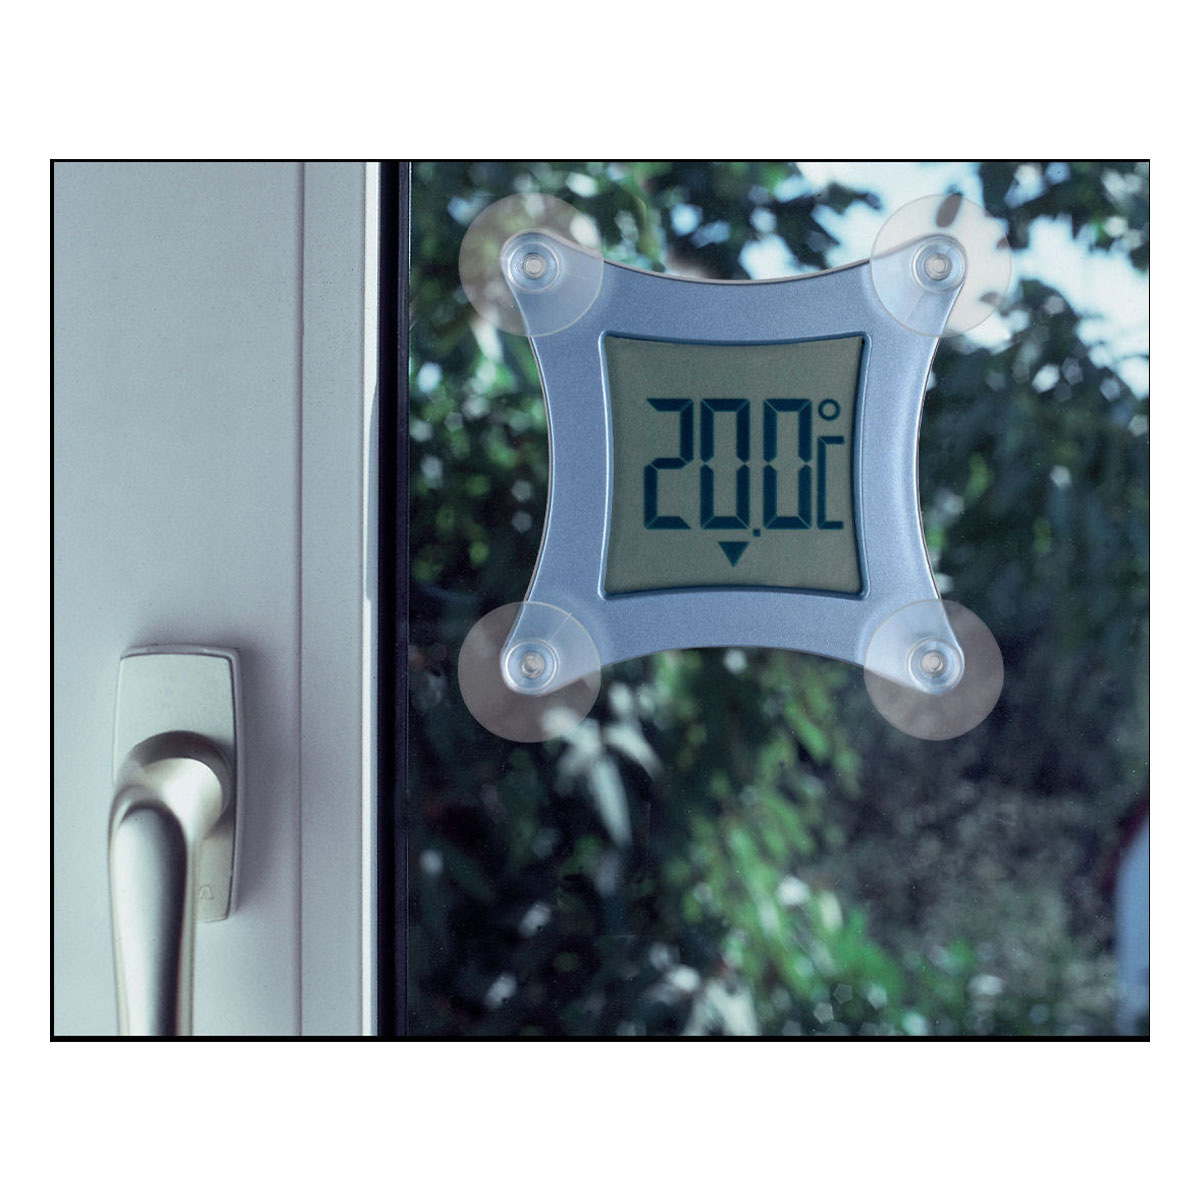 30-1026-digitales-fensterthermometer-pocco-anwendung-1200x1200px.jpg